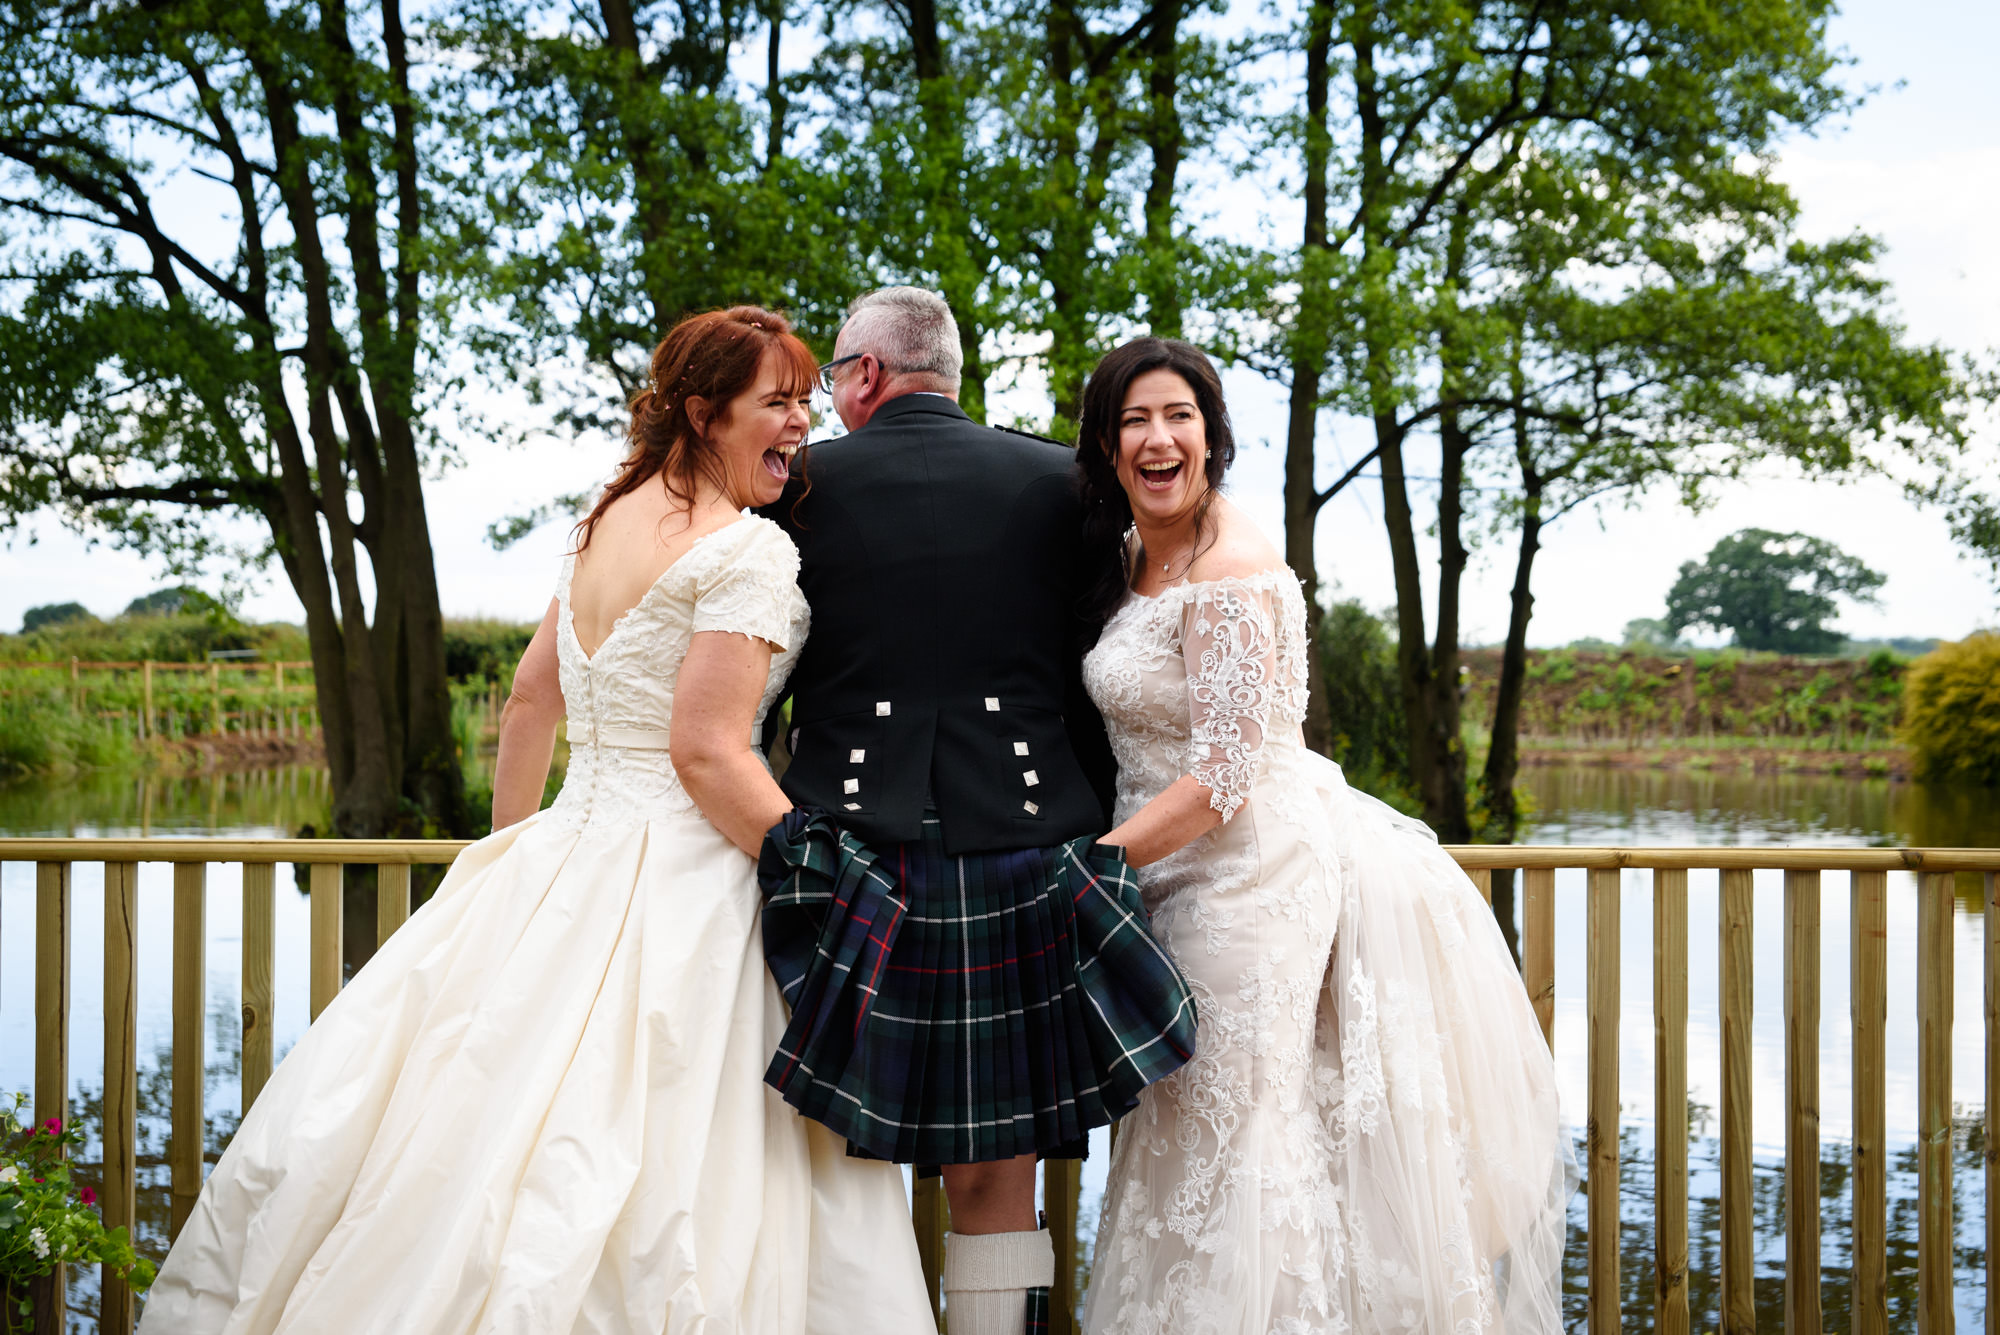 Two brides checking if their friend is a true Scotsman